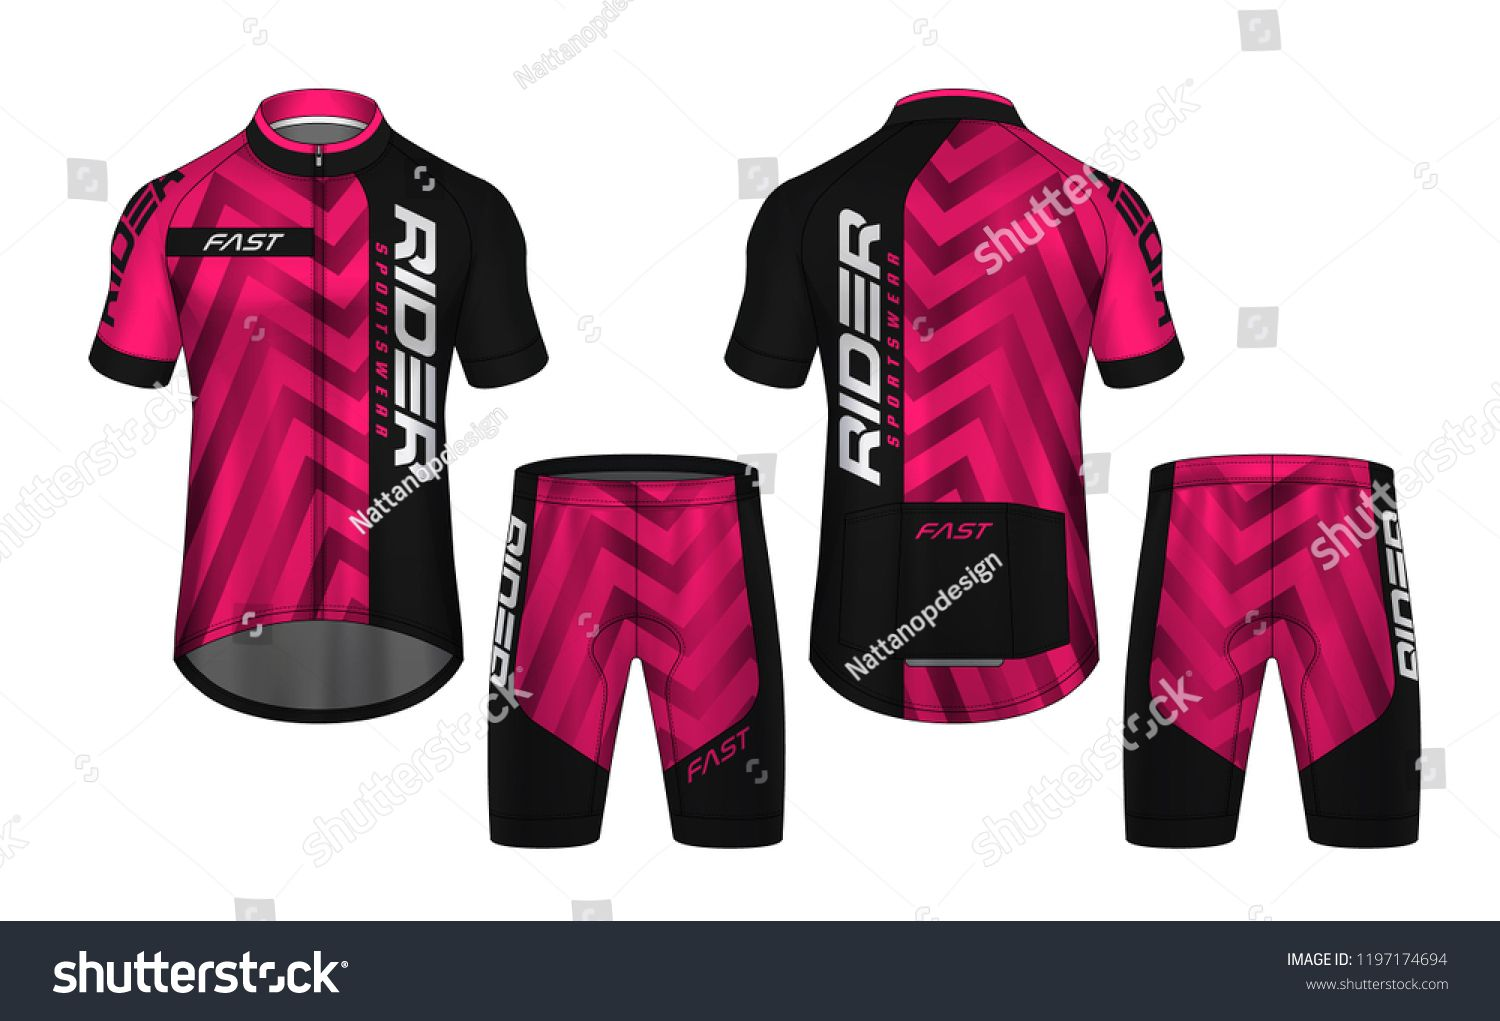 Download Cycling Jerseys Mockup T Shirt Sport Design Template Uniform For Bicycle Apparel Shirt Sport Mockup Cycling Sports Design Sports Cycling Jerseys